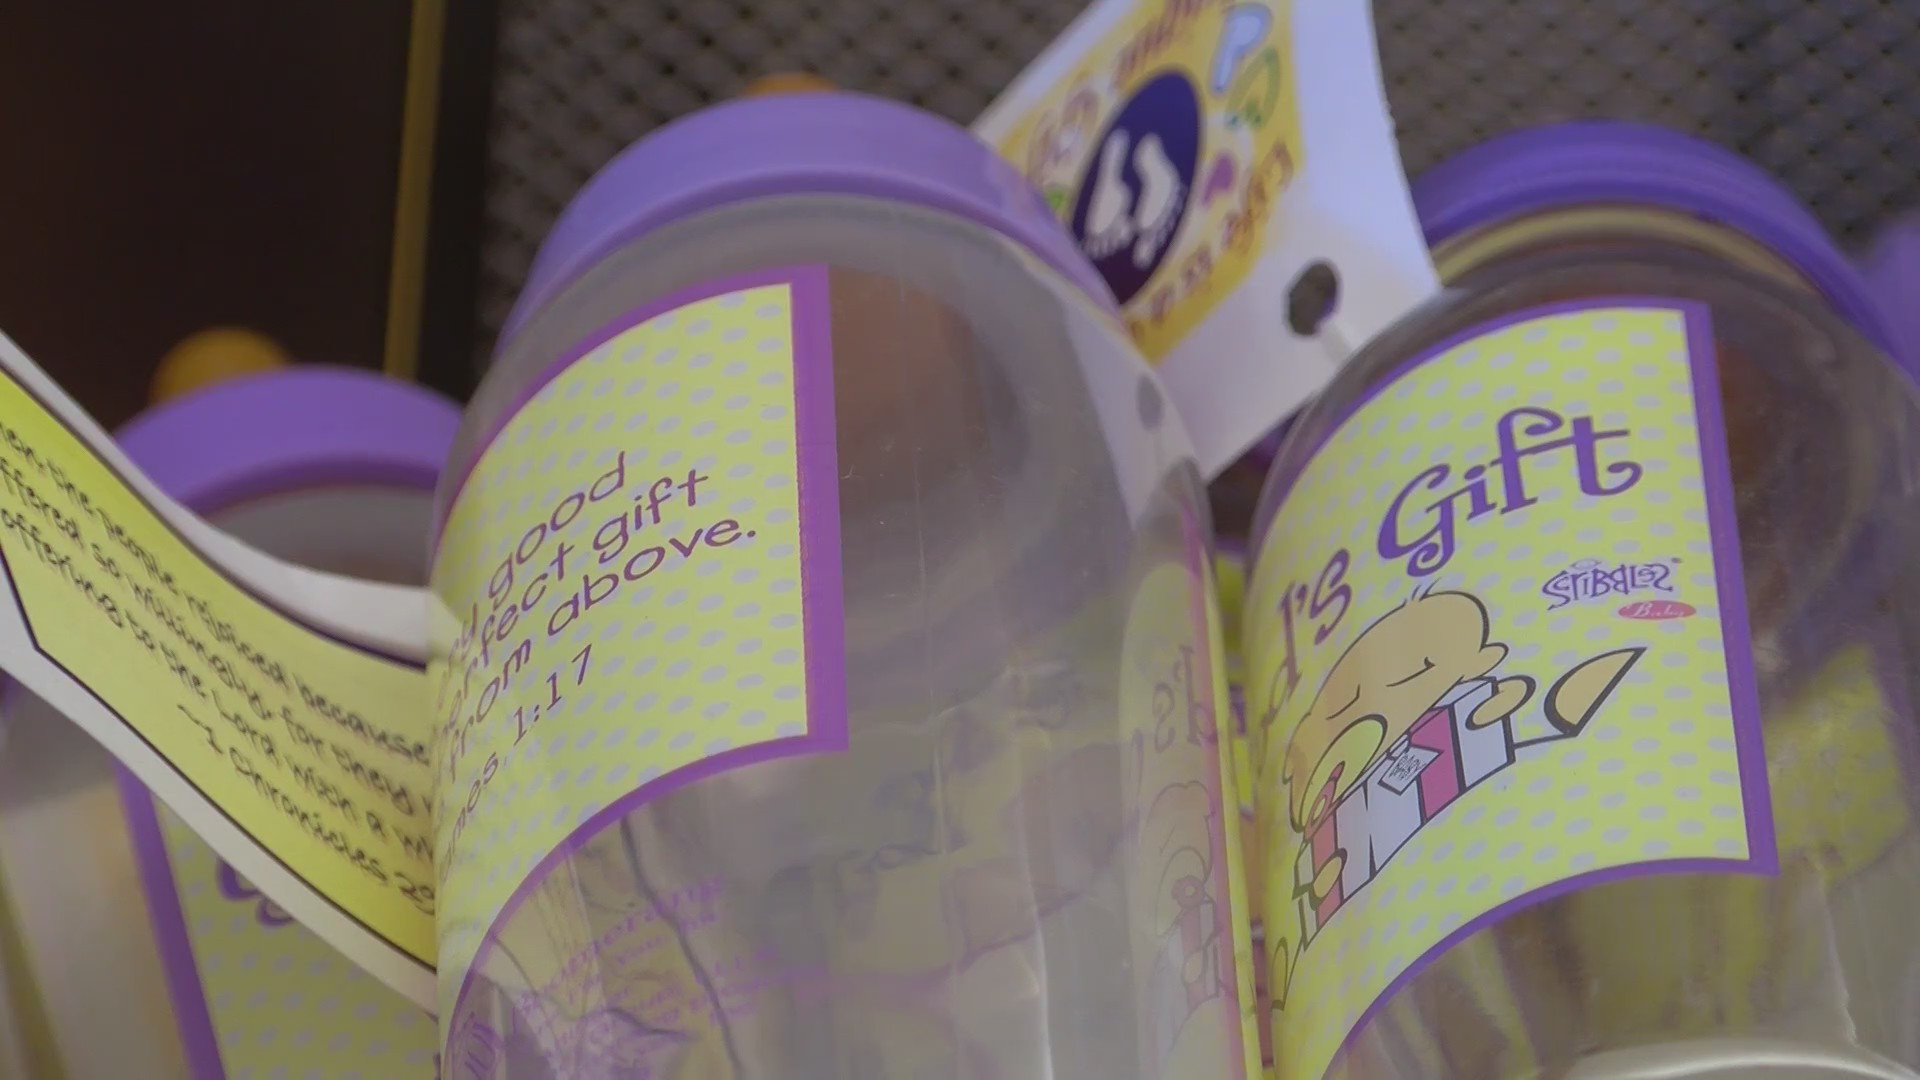 Baby_bottle_campaign_0_20190128234050